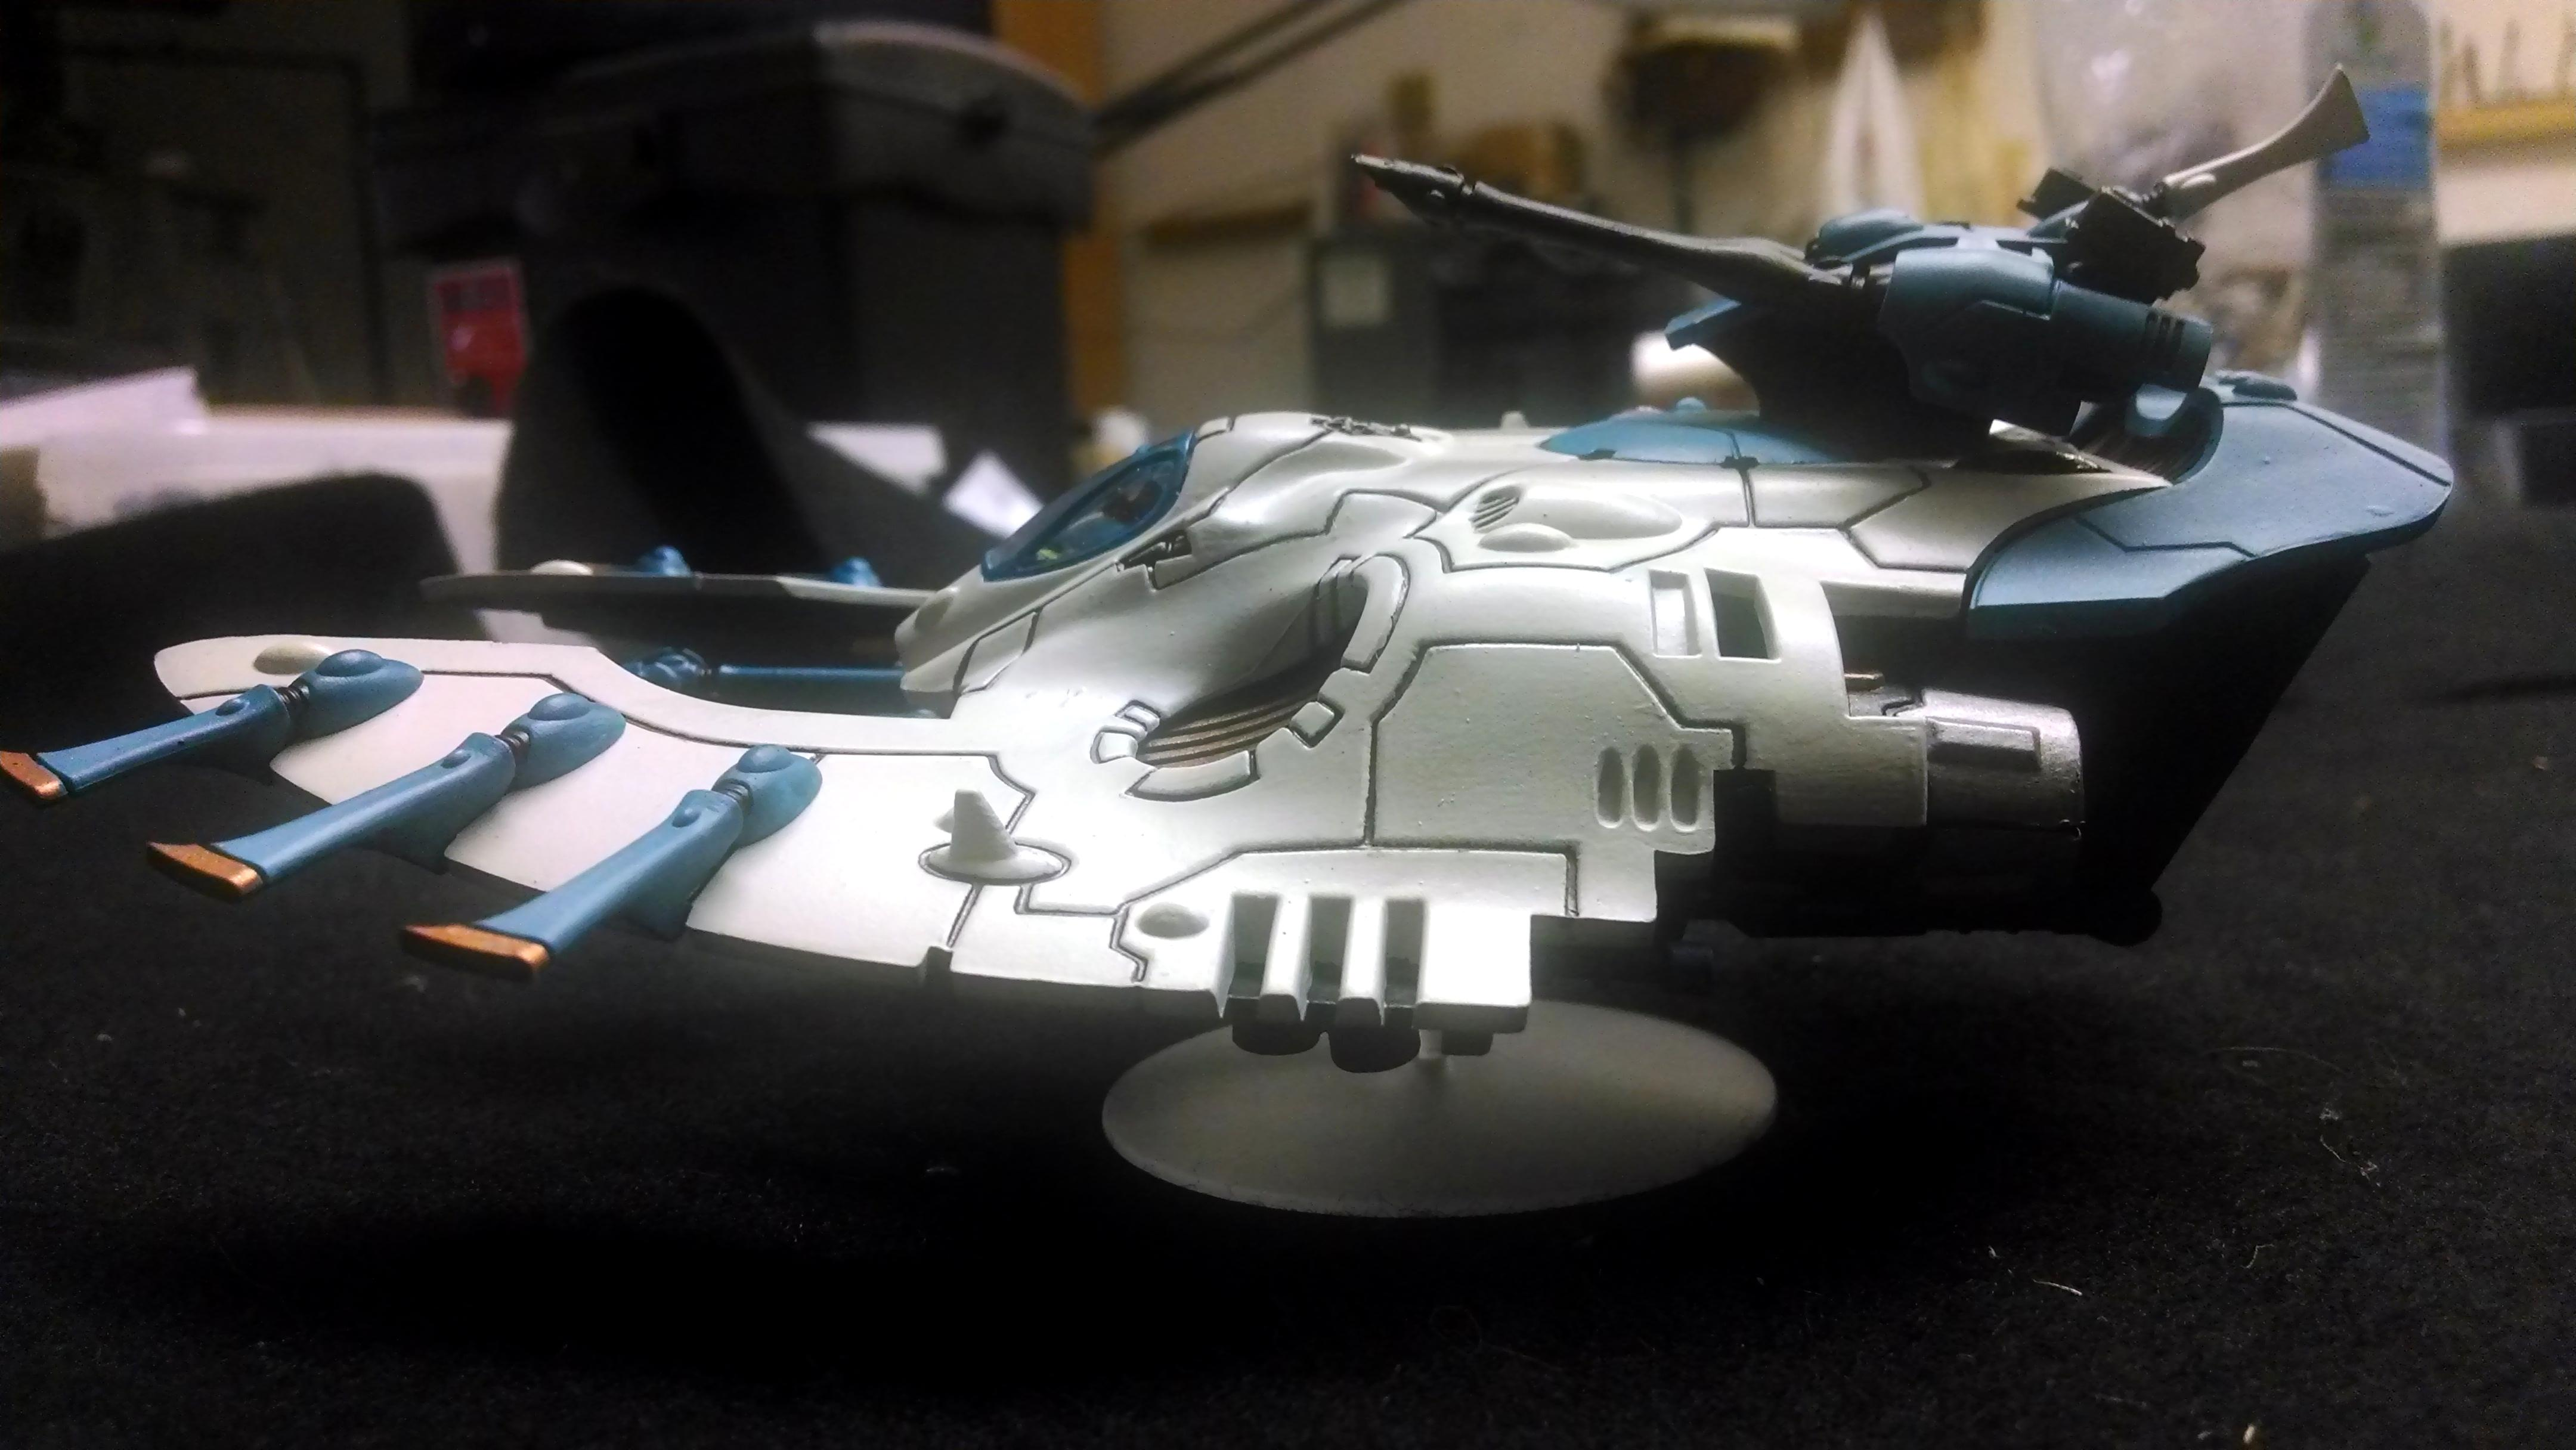 Eldar Wave serpent 4